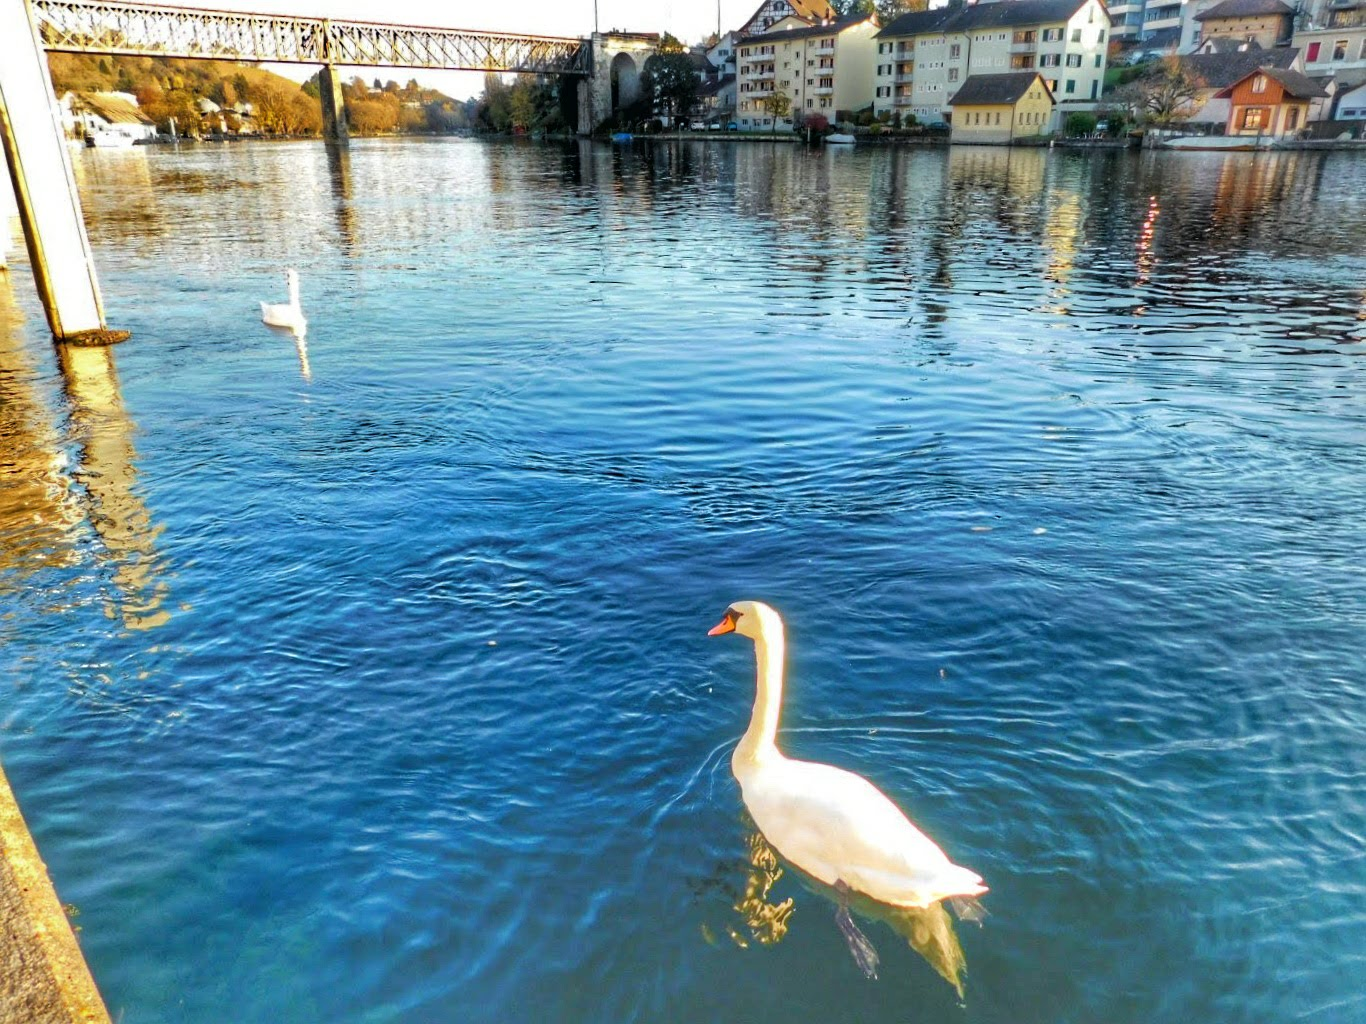 Swans on the Rhine River